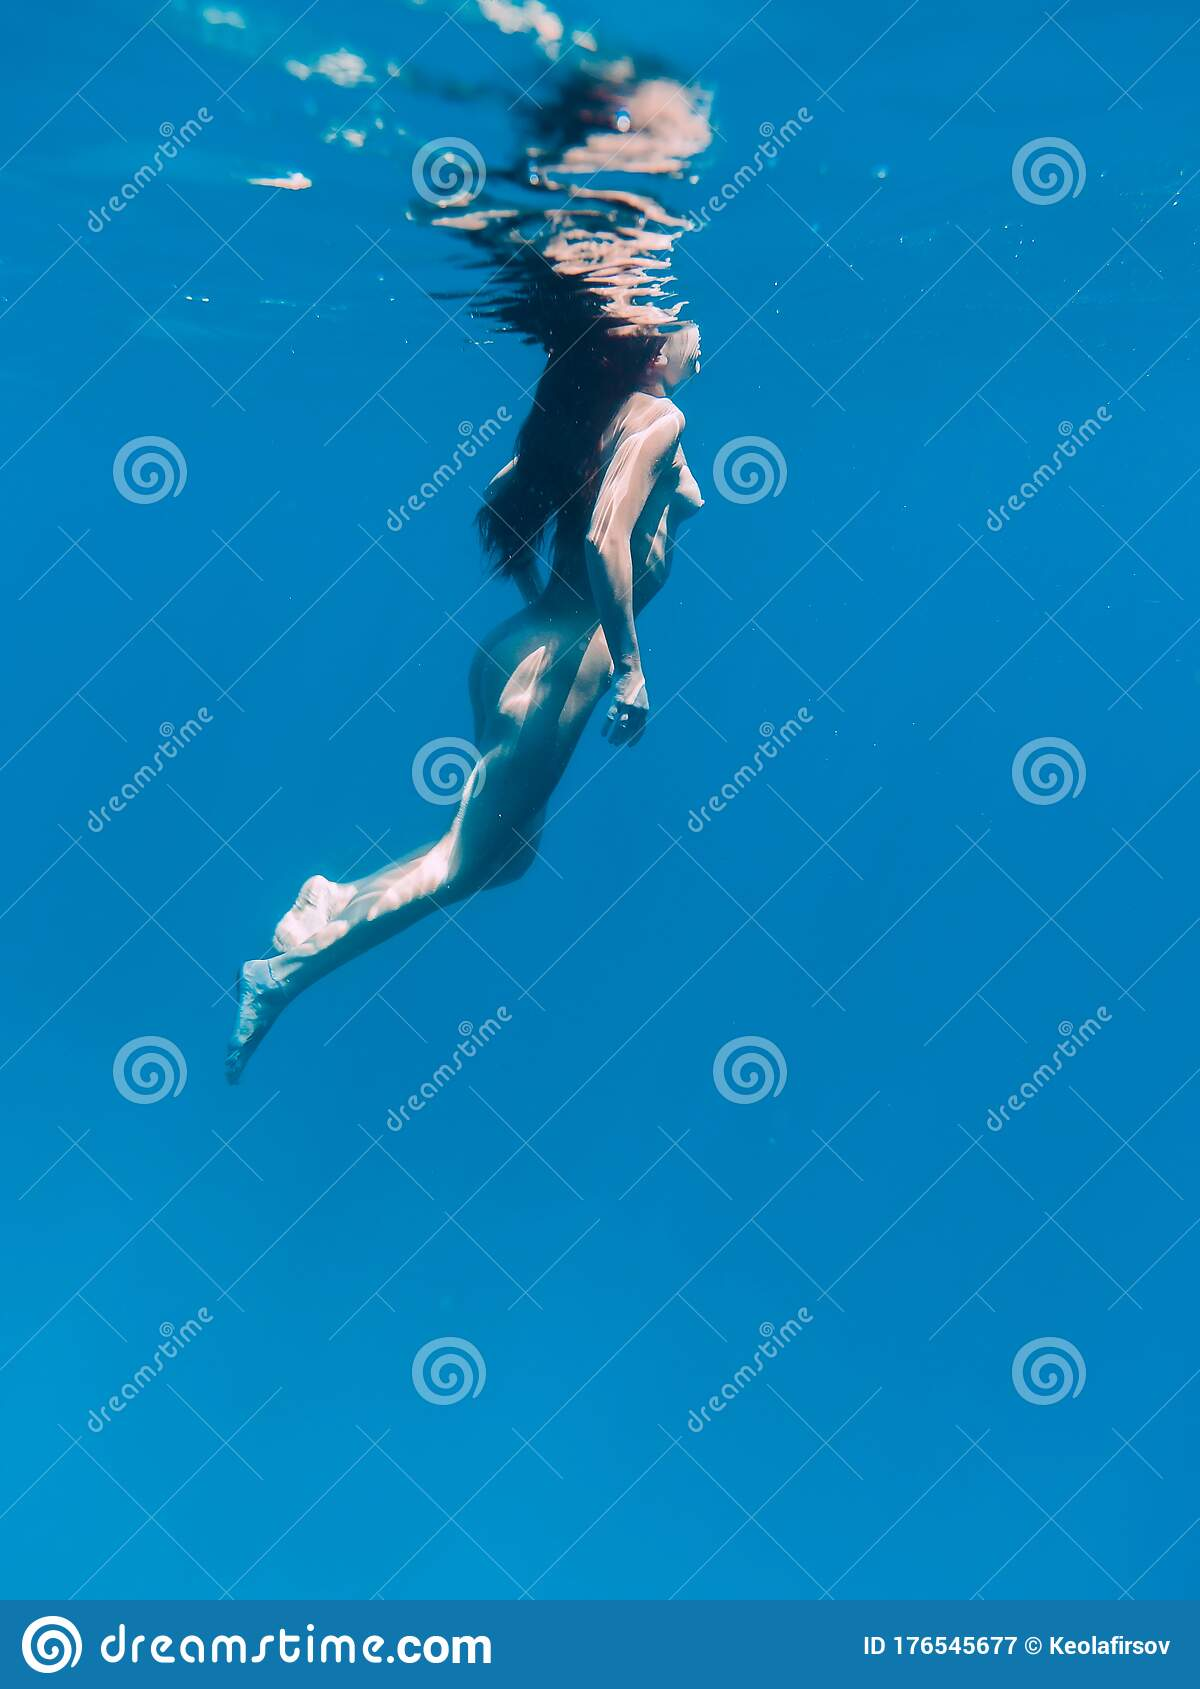 Blue naked women Slim Naked Woman Posing Underwater In Transparent Blue Ocean Nude Young Women Swimming In Sea Stock Image Image Of Caucasian Glamour 176545677